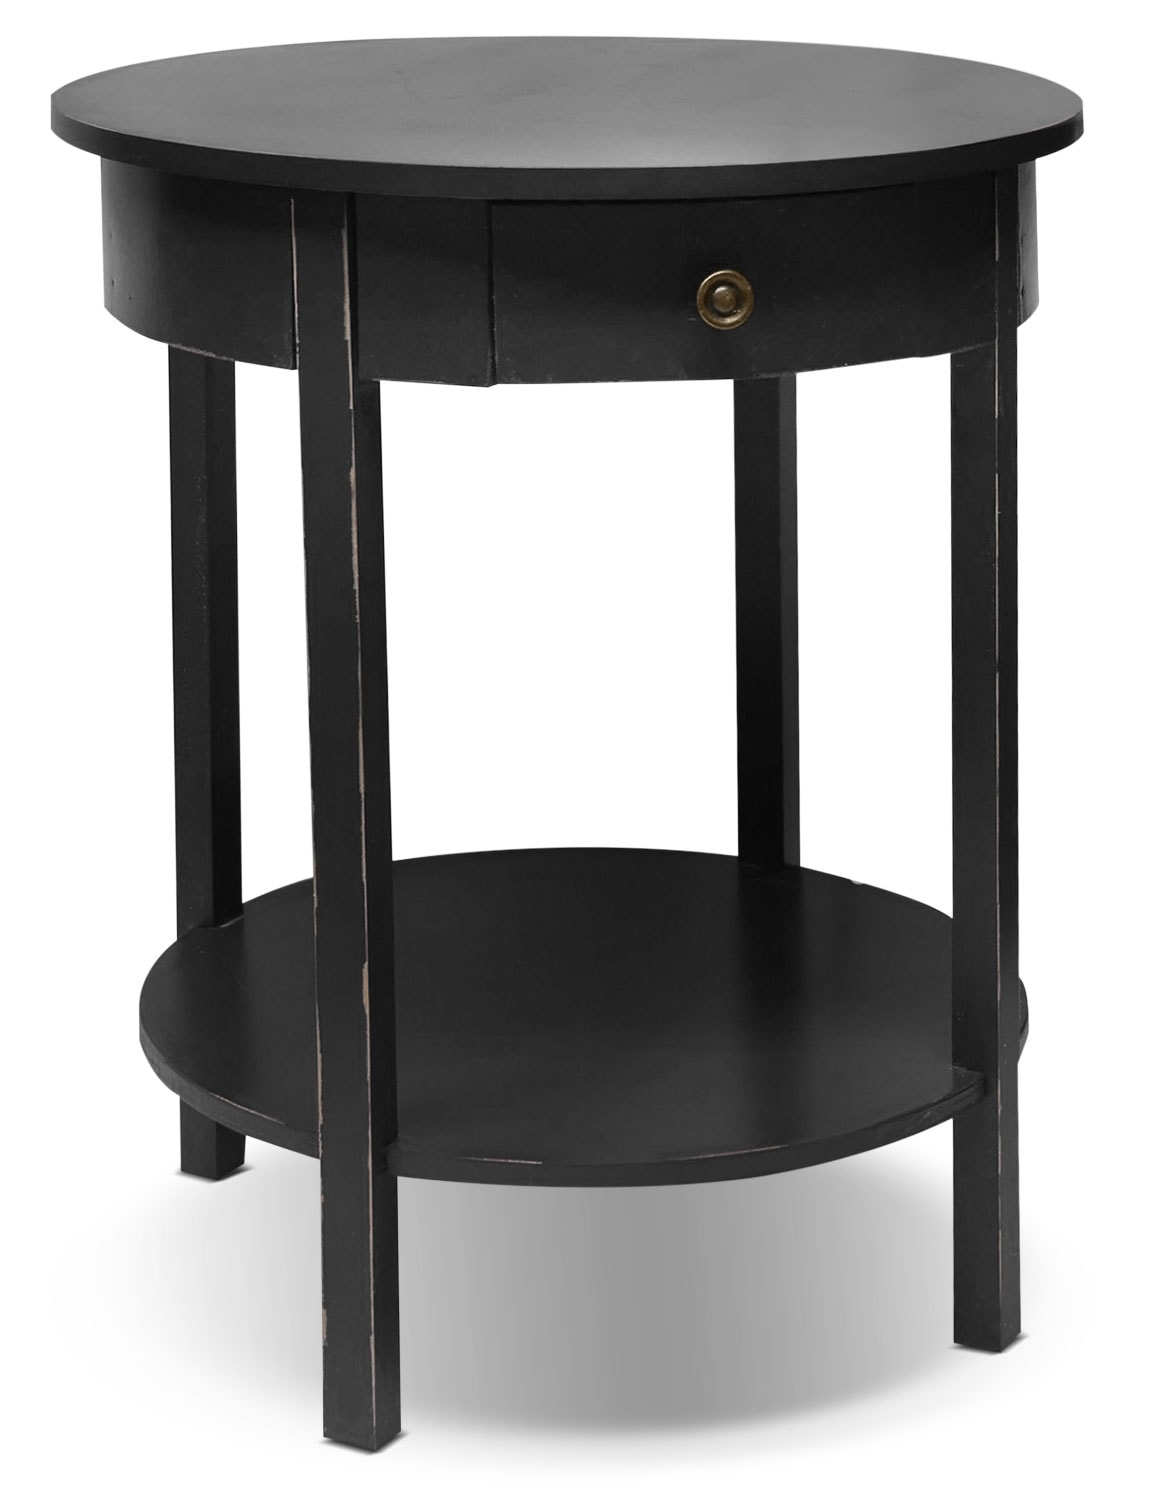 Table d'appoint Grafton - noir satiné